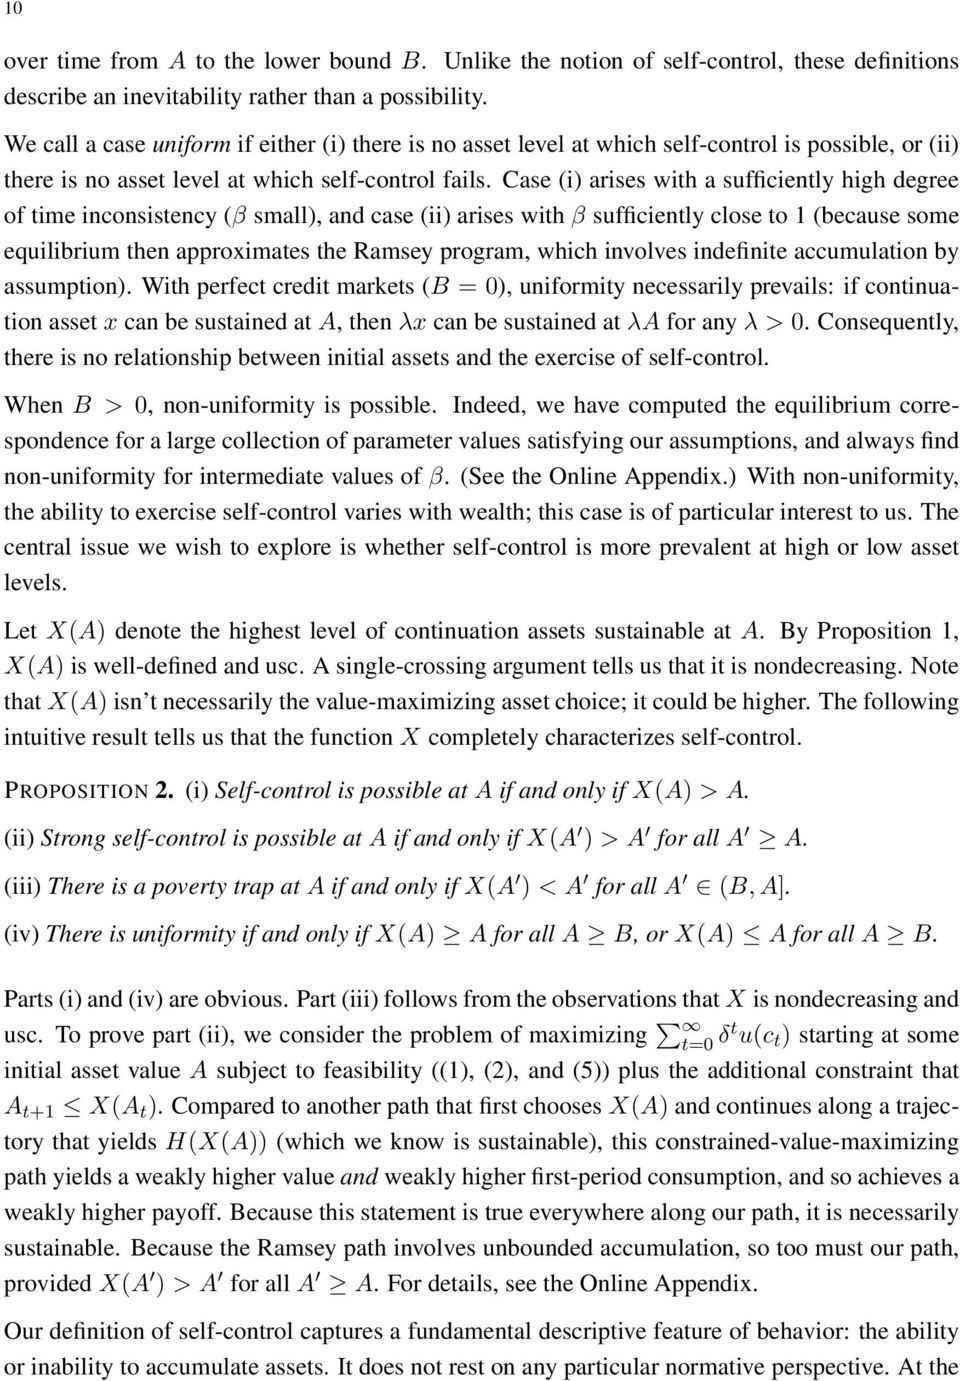 Case (i) arises with a sufficiently high degree of time inconsistency (β small), and case (ii) arises with β sufficiently close to 1 (because some equilibrium then approximates the Ramsey program,